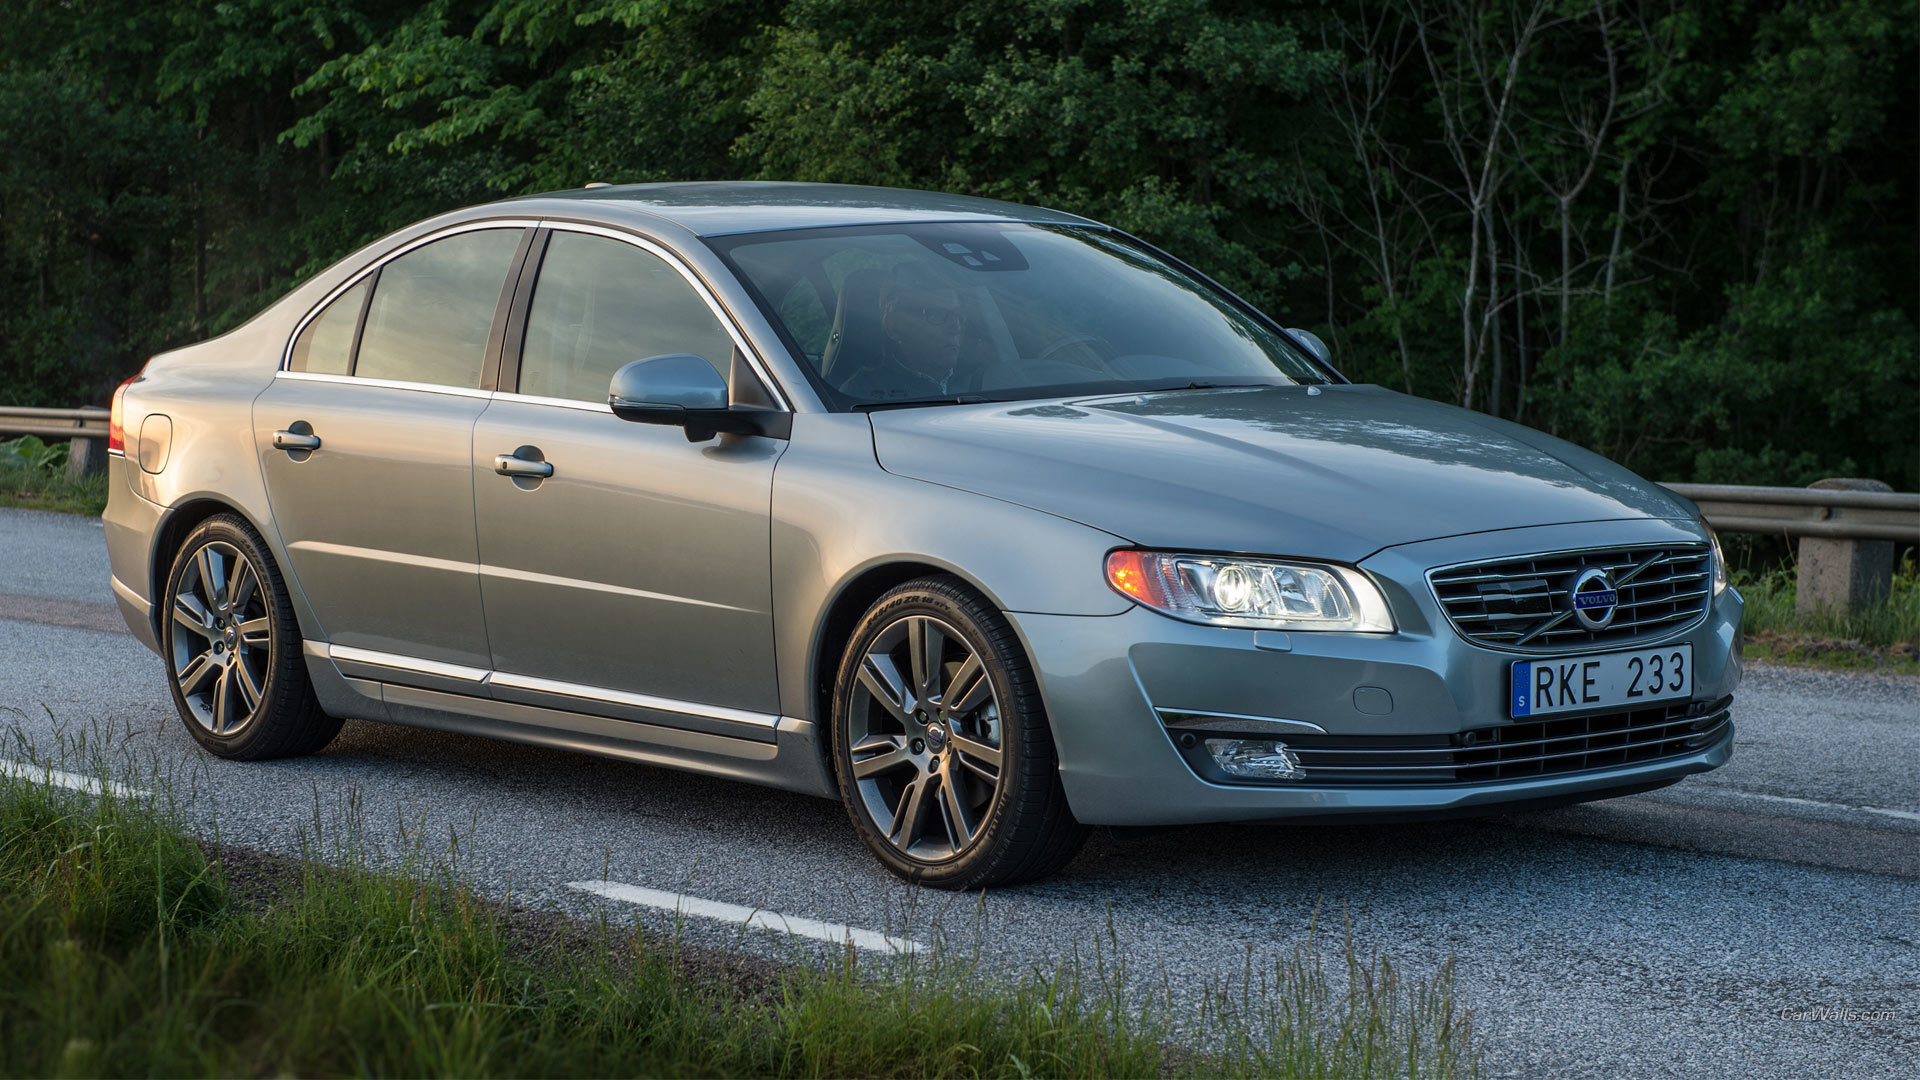 Awesome Volvo S80 free background ID:6910 for full hd 1920x1080 desktop